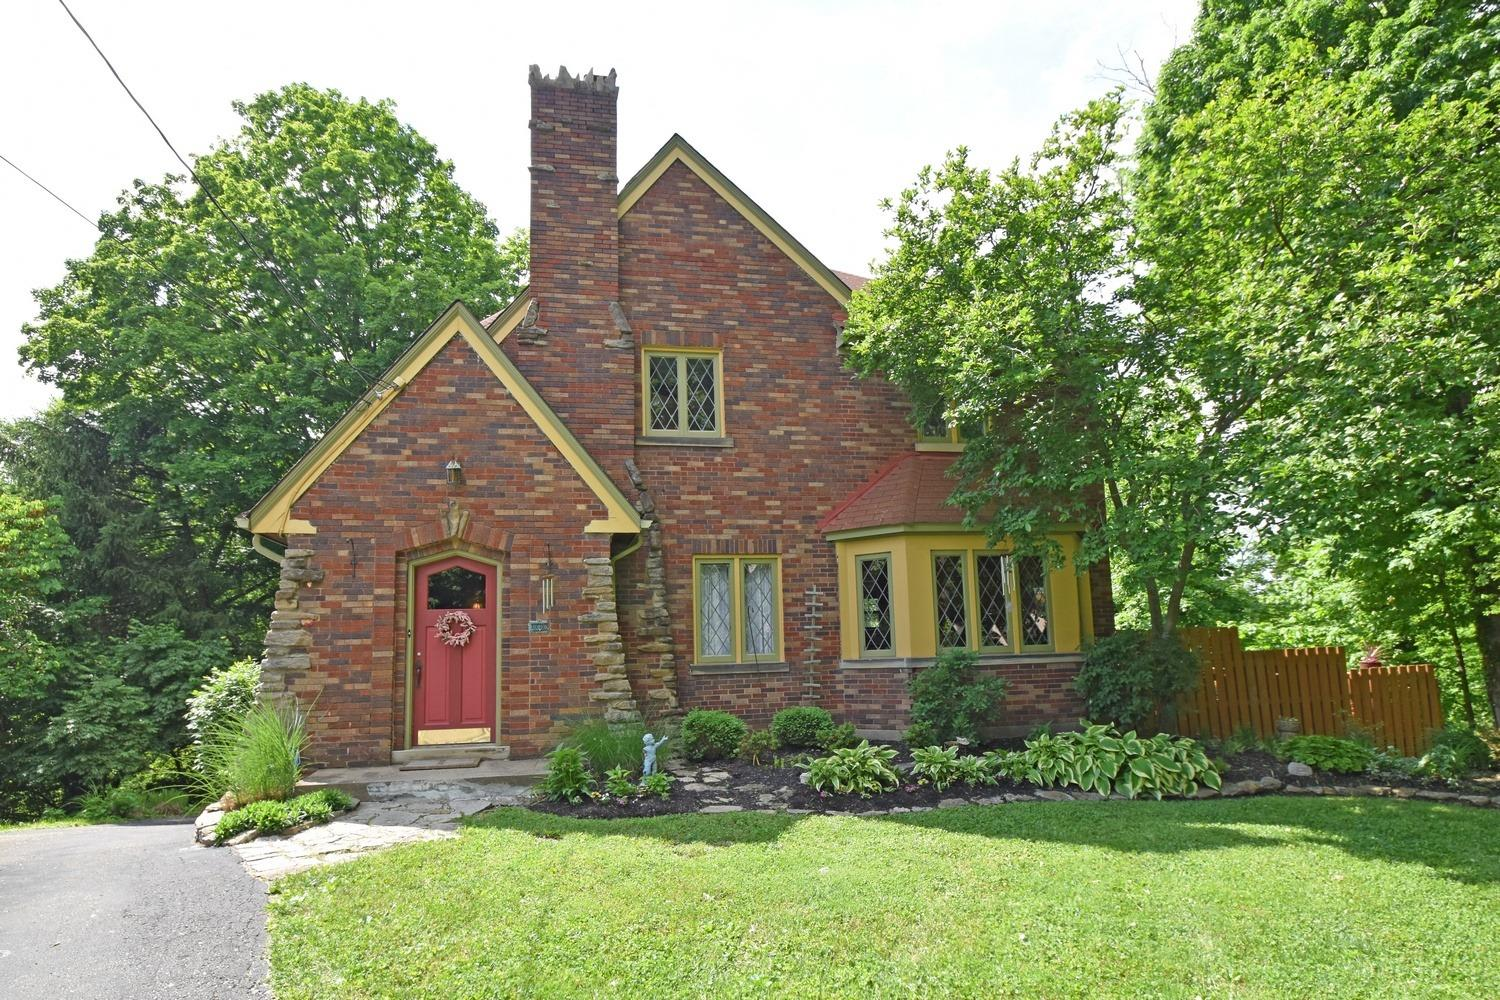 6698 Iris Ave Kennedy Hts., OH